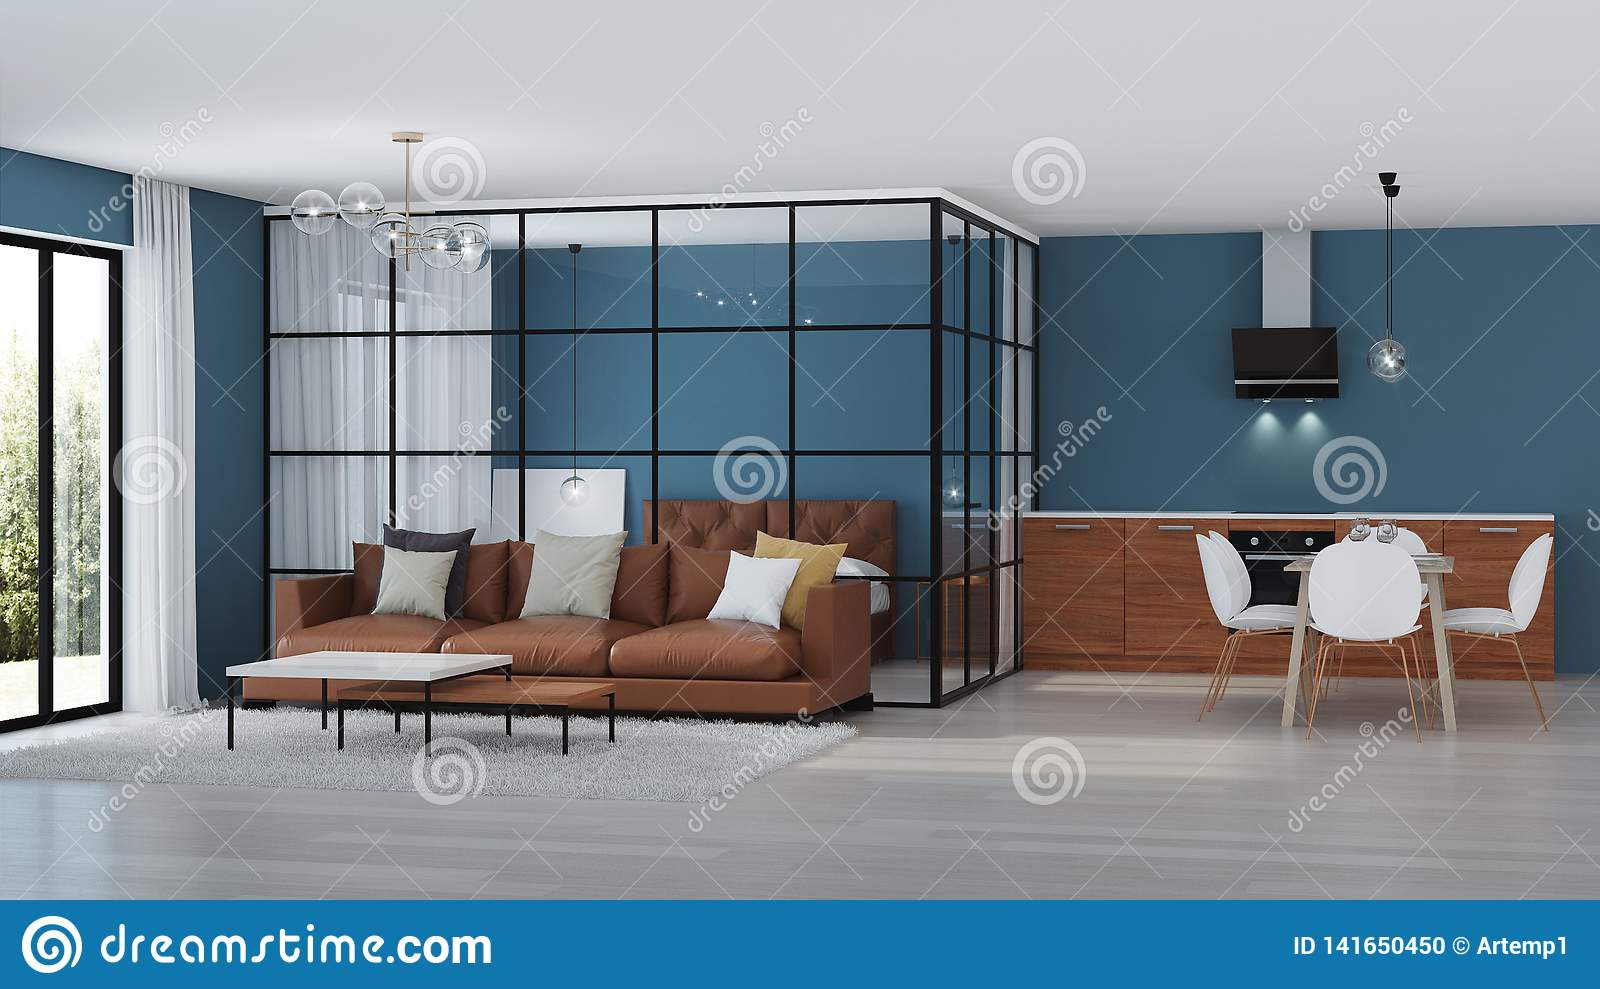 287 House Partitions Photos Free Royalty Free Stock Photos From Dreamstime